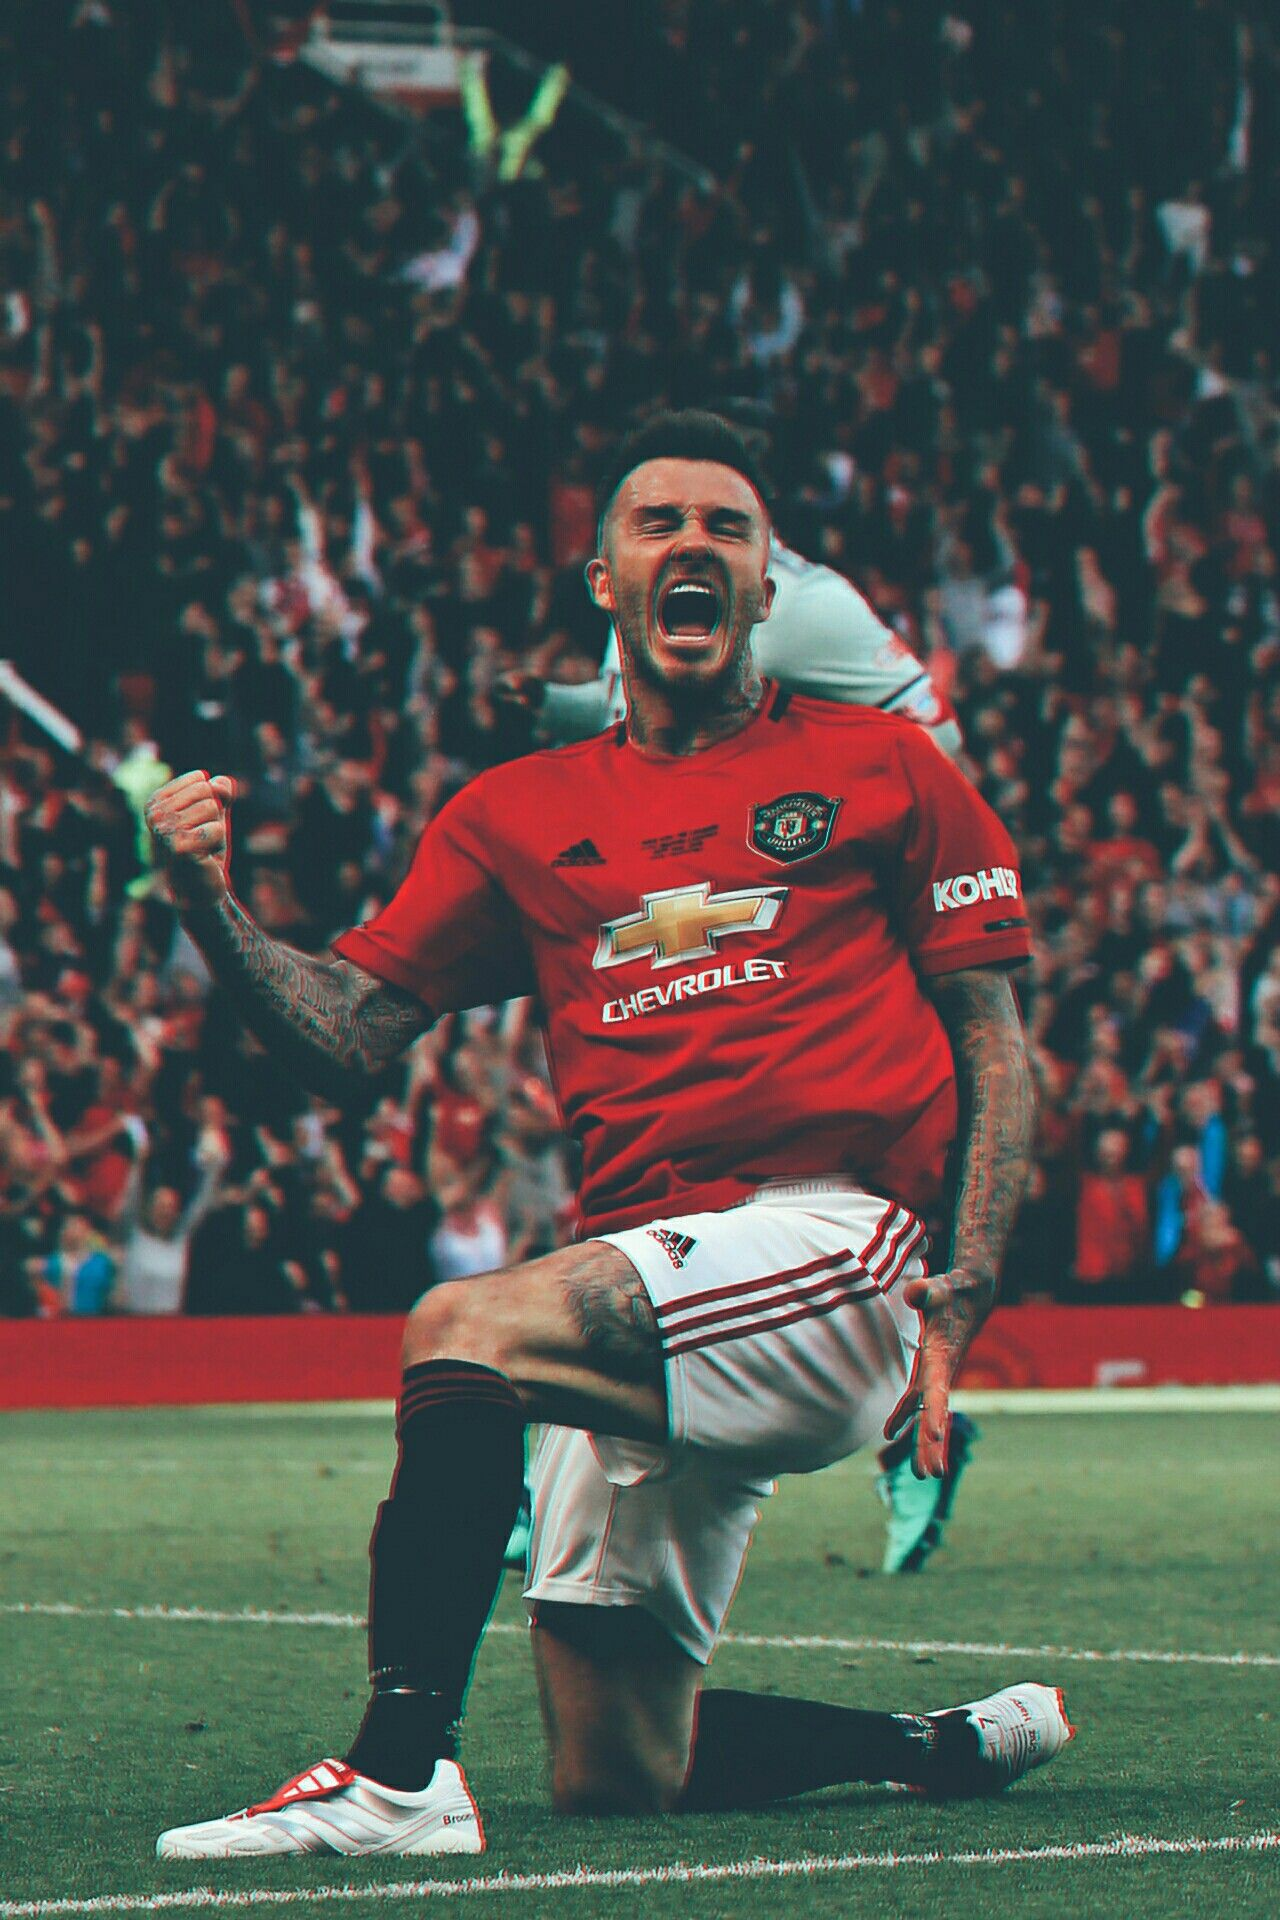 Pin By Andrewfeng On Soccer In 2020 Manchester United Wallpaper David Beckham Manchester United Manchester United Team